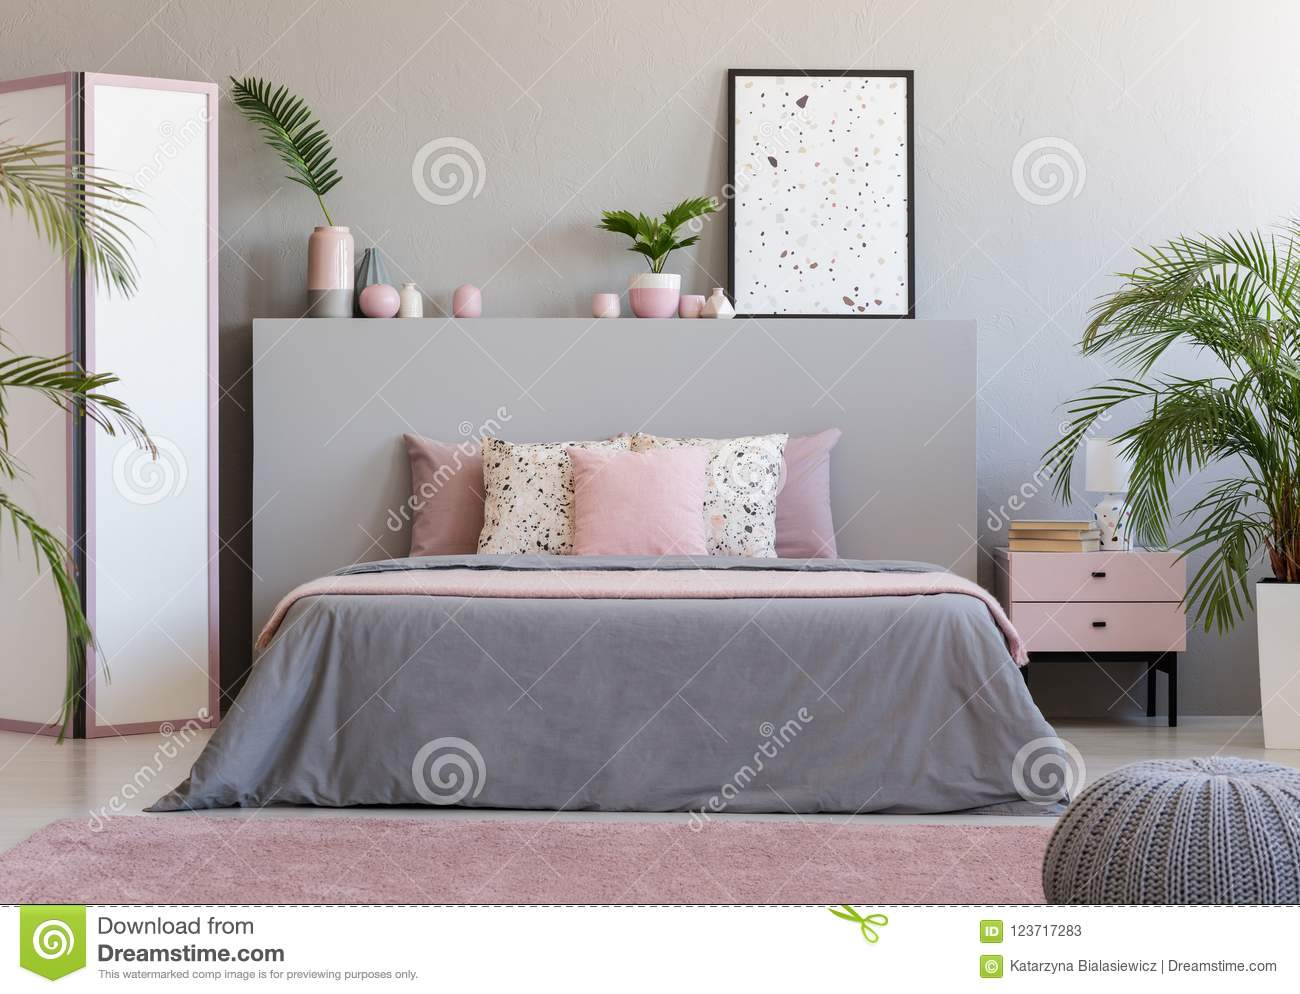 Poster On Grey Headboard Of Bed In Grey And Pink Bedroom